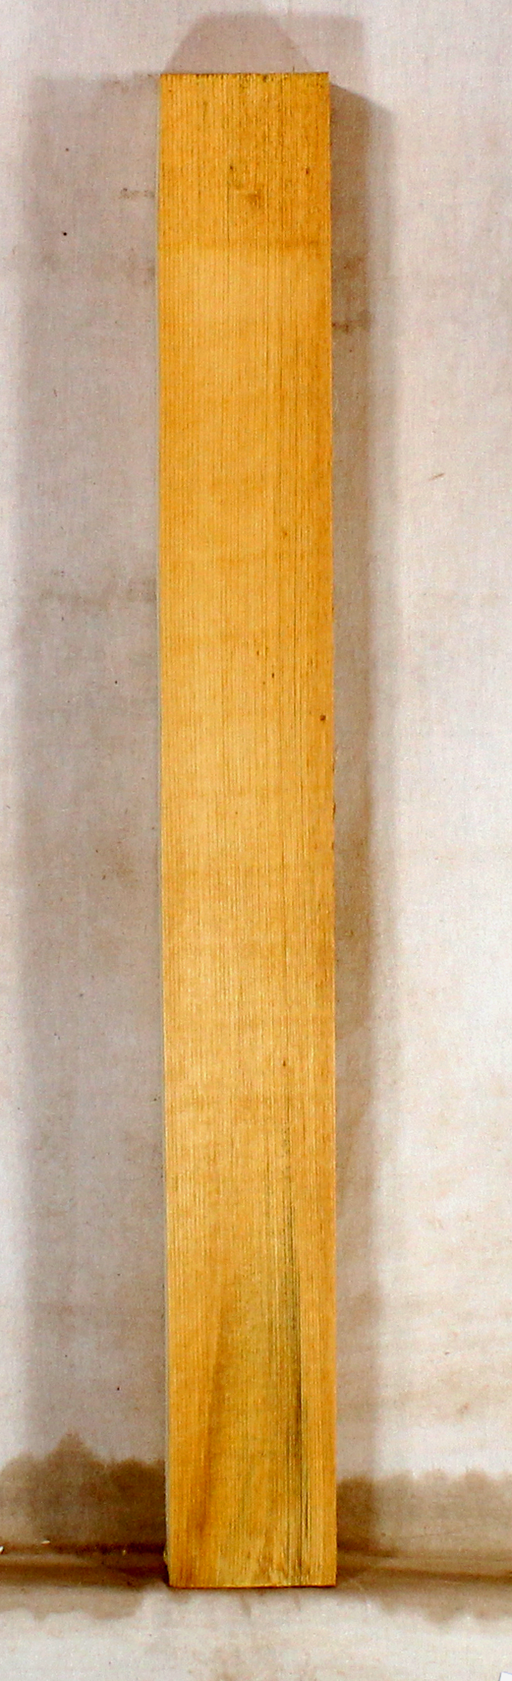 Port Orford Cedar Ukulele Neck (TB31)